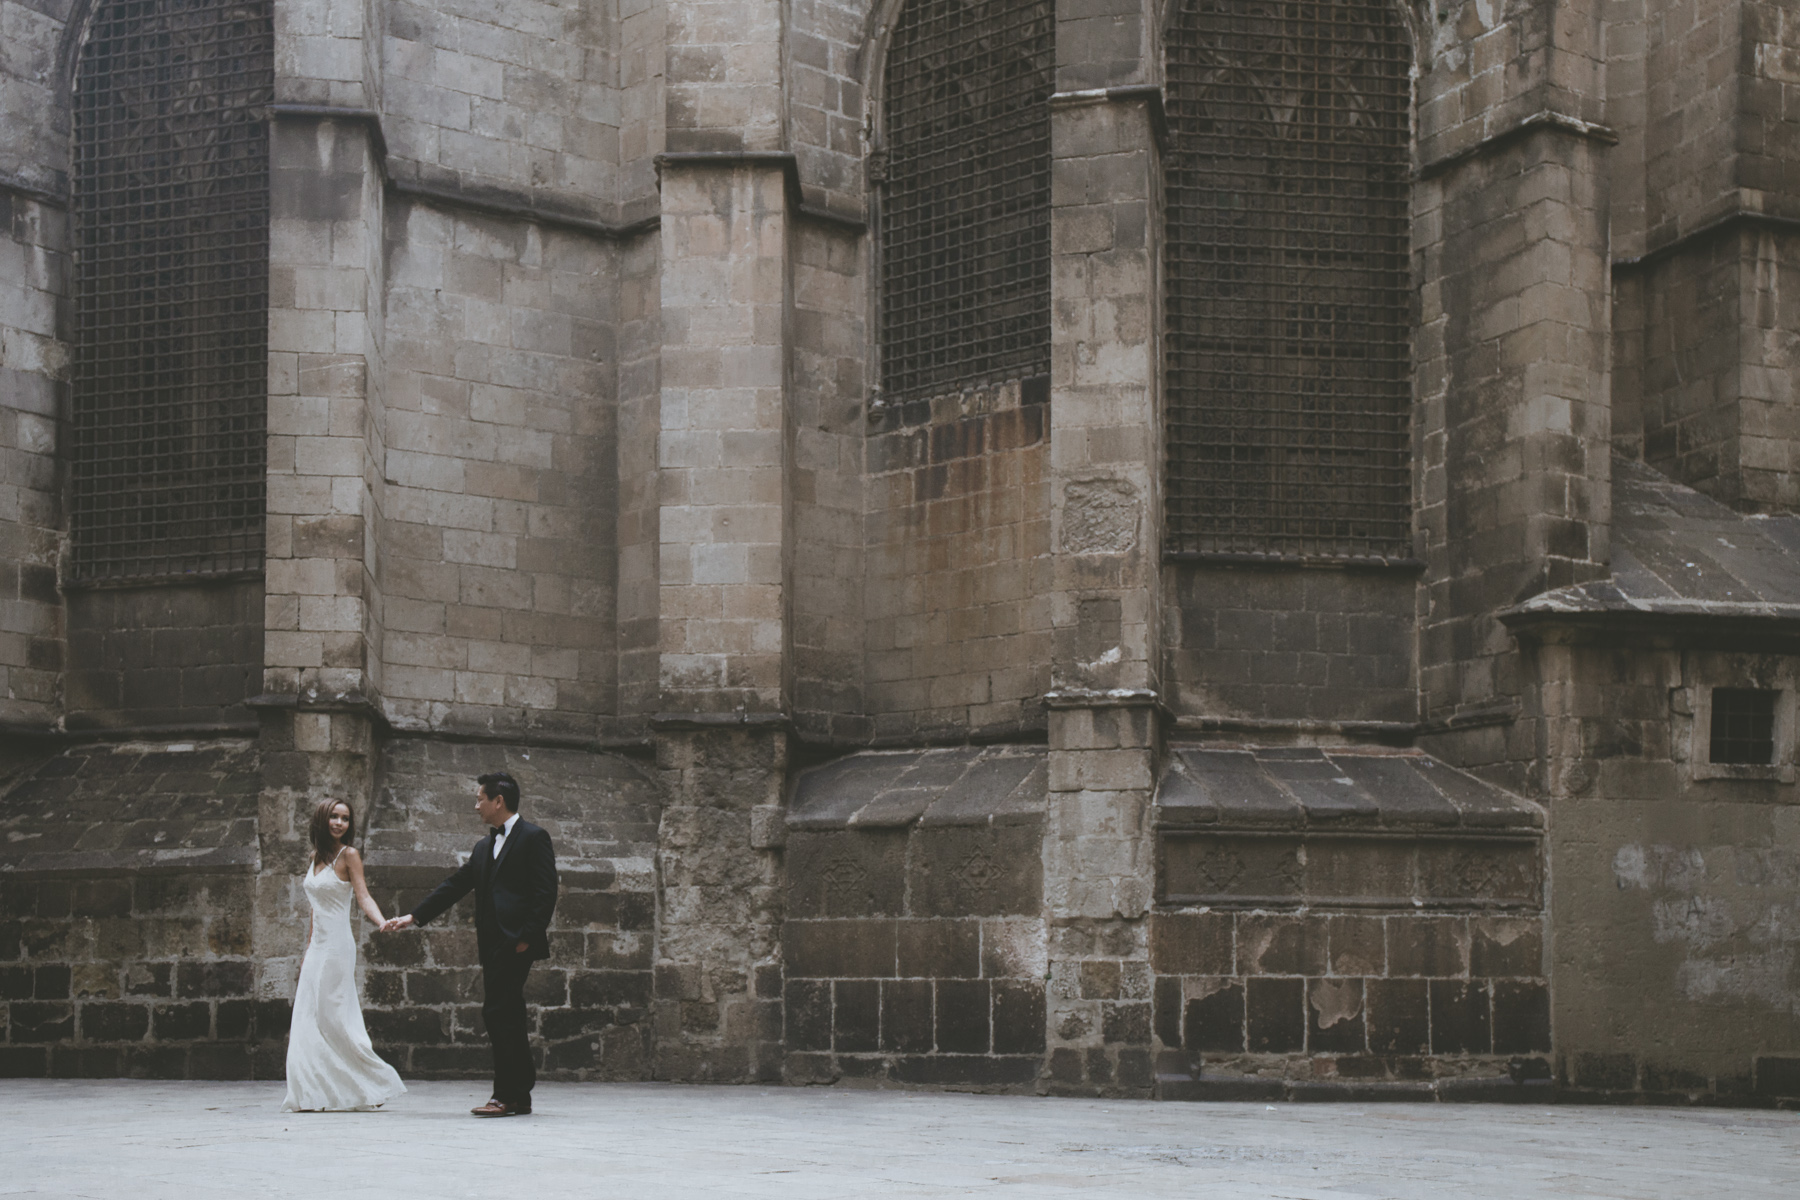 Asian wedding photographer Barcelona